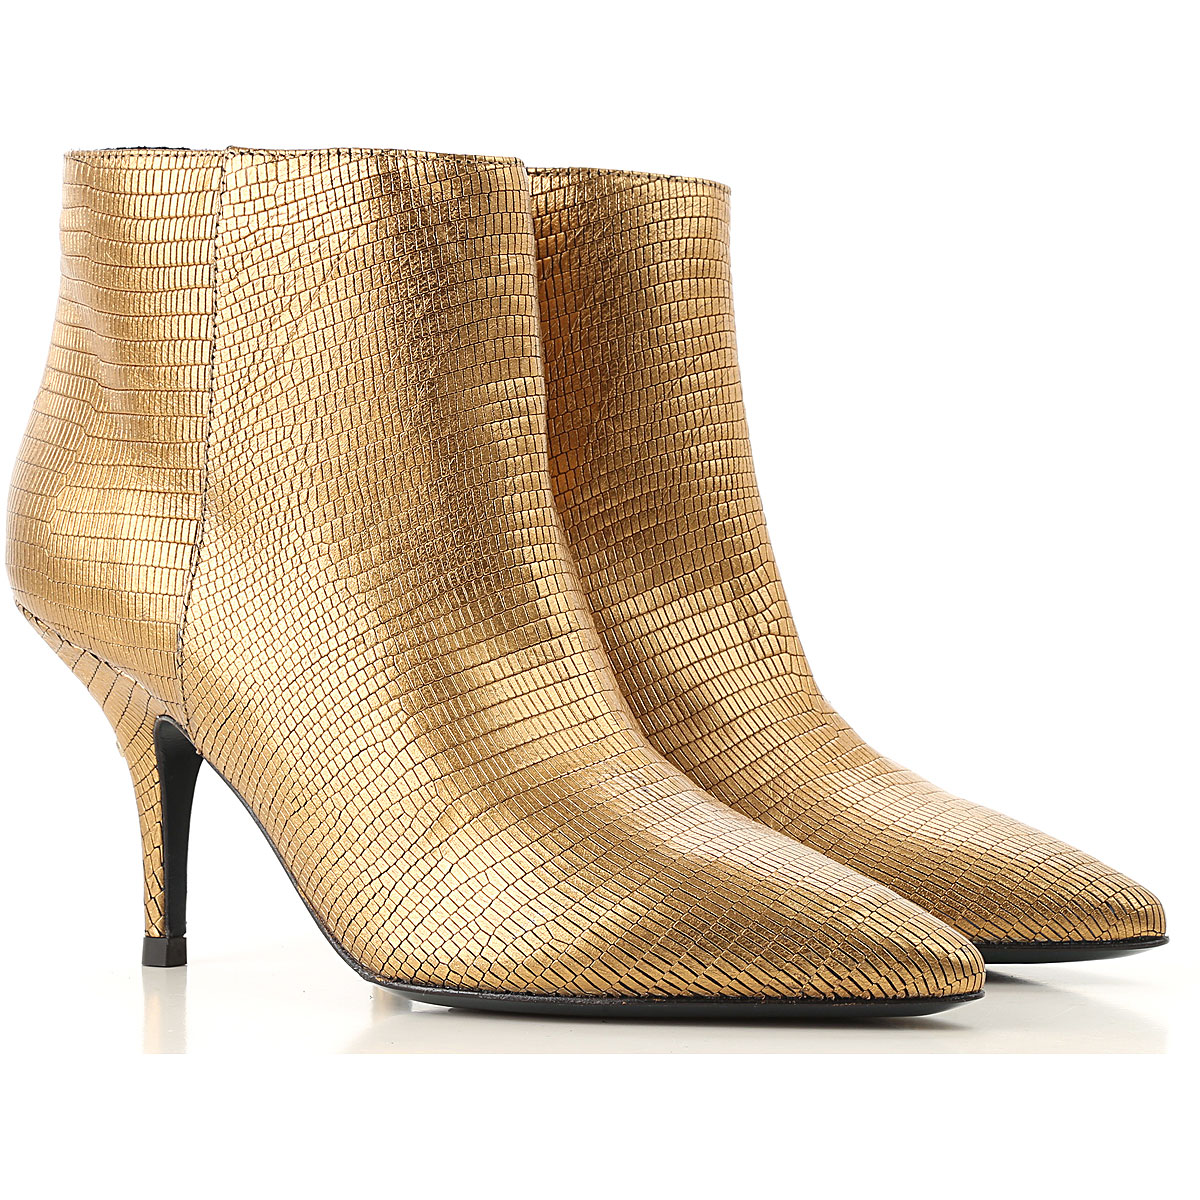 Image of Patrizia Pepe Boots for Women, Booties, Dark Gold, Leather, 2017, 5 7 8